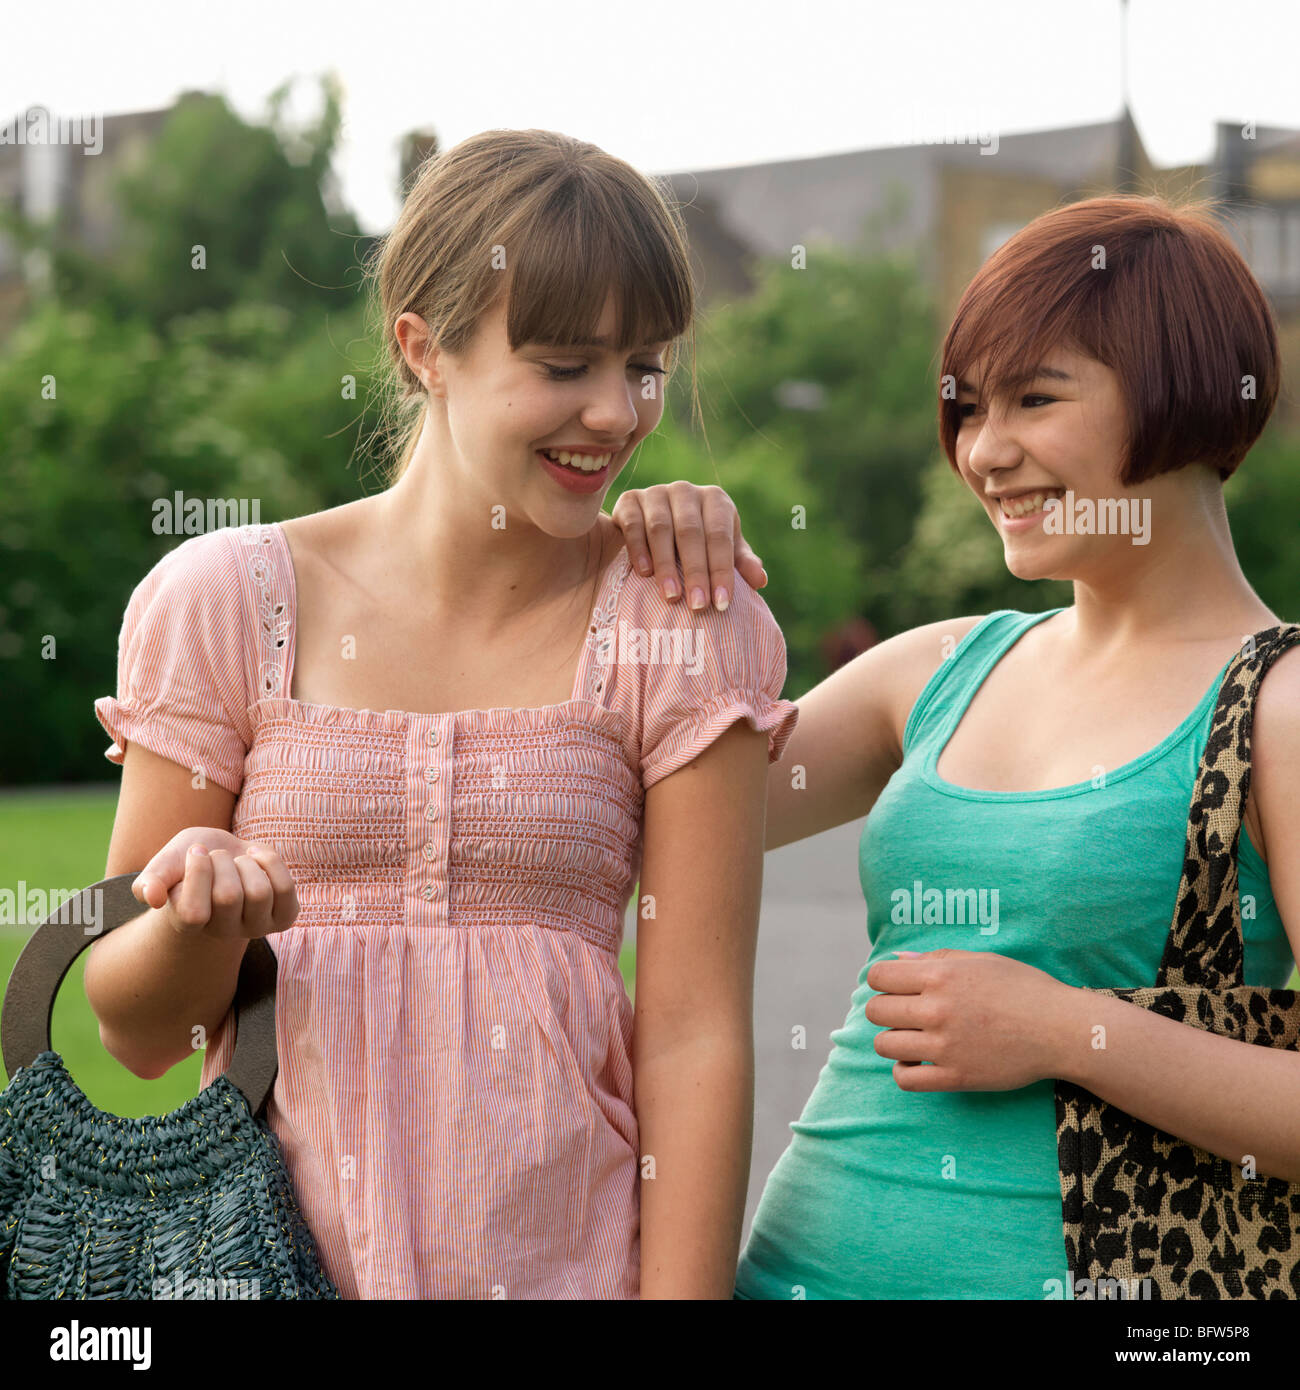 2 young woman laughing with bags - Stock Image